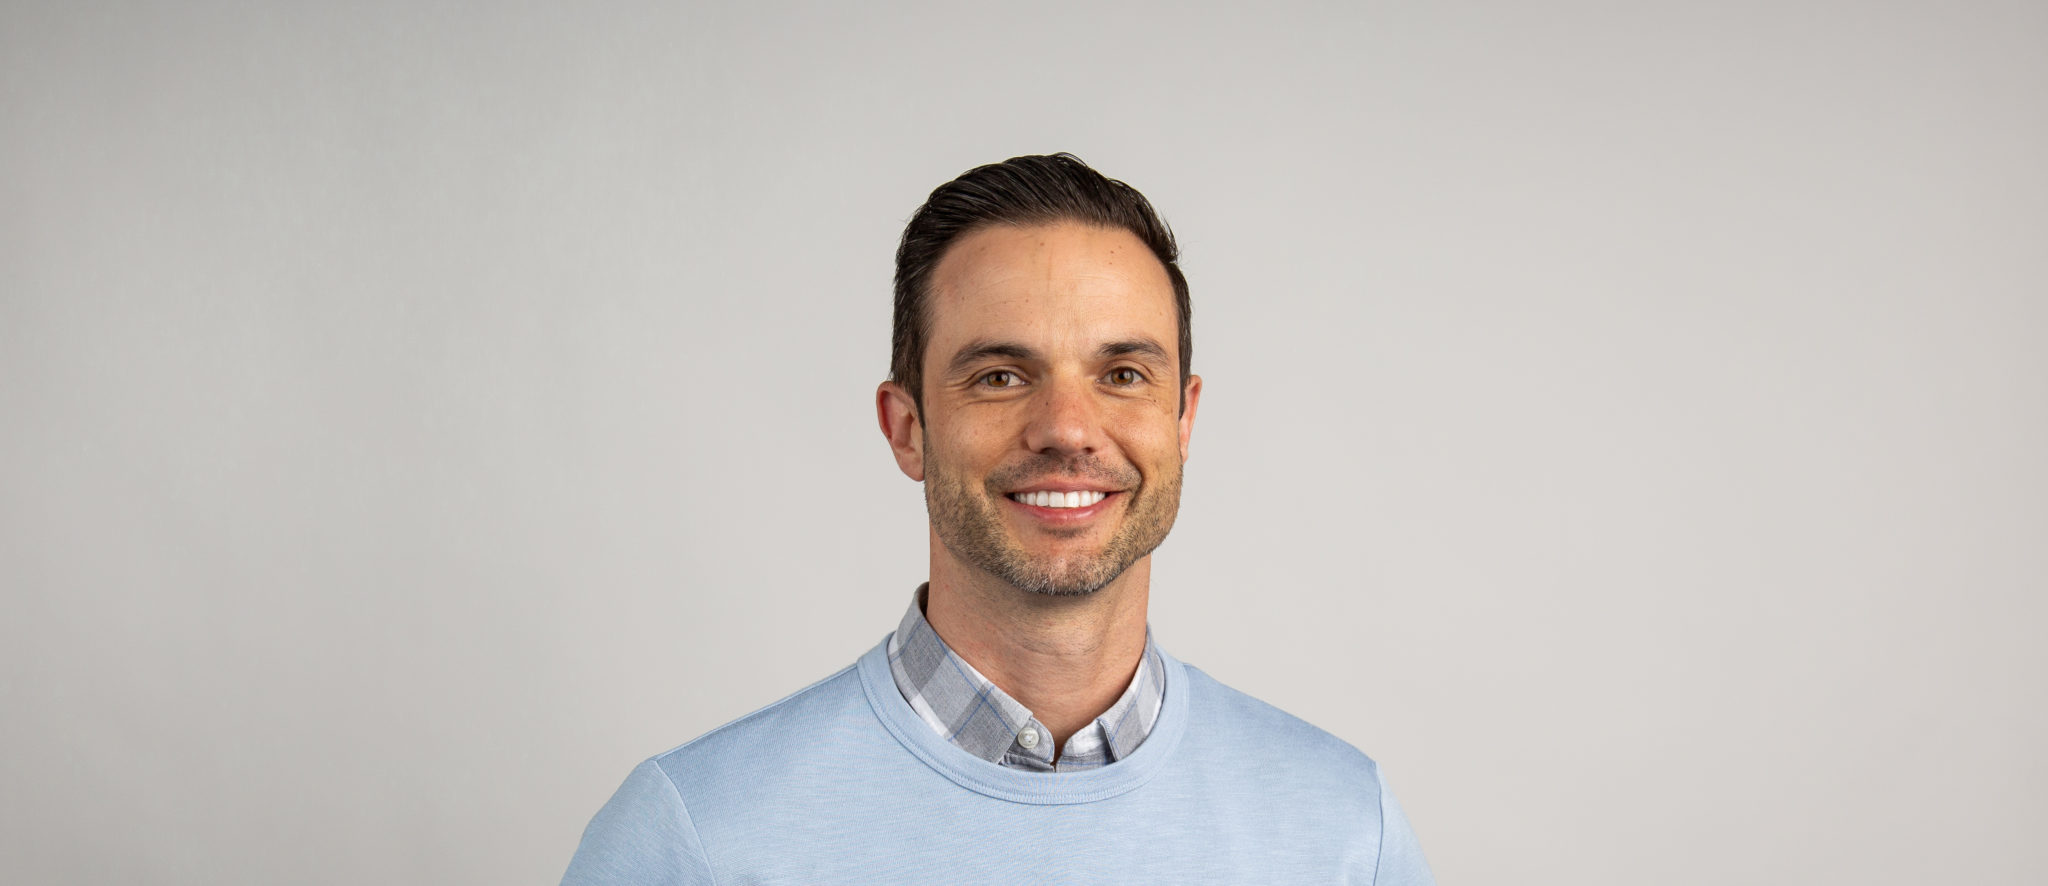 Chad Hallert Joins Foundry as Chief Digital Officer